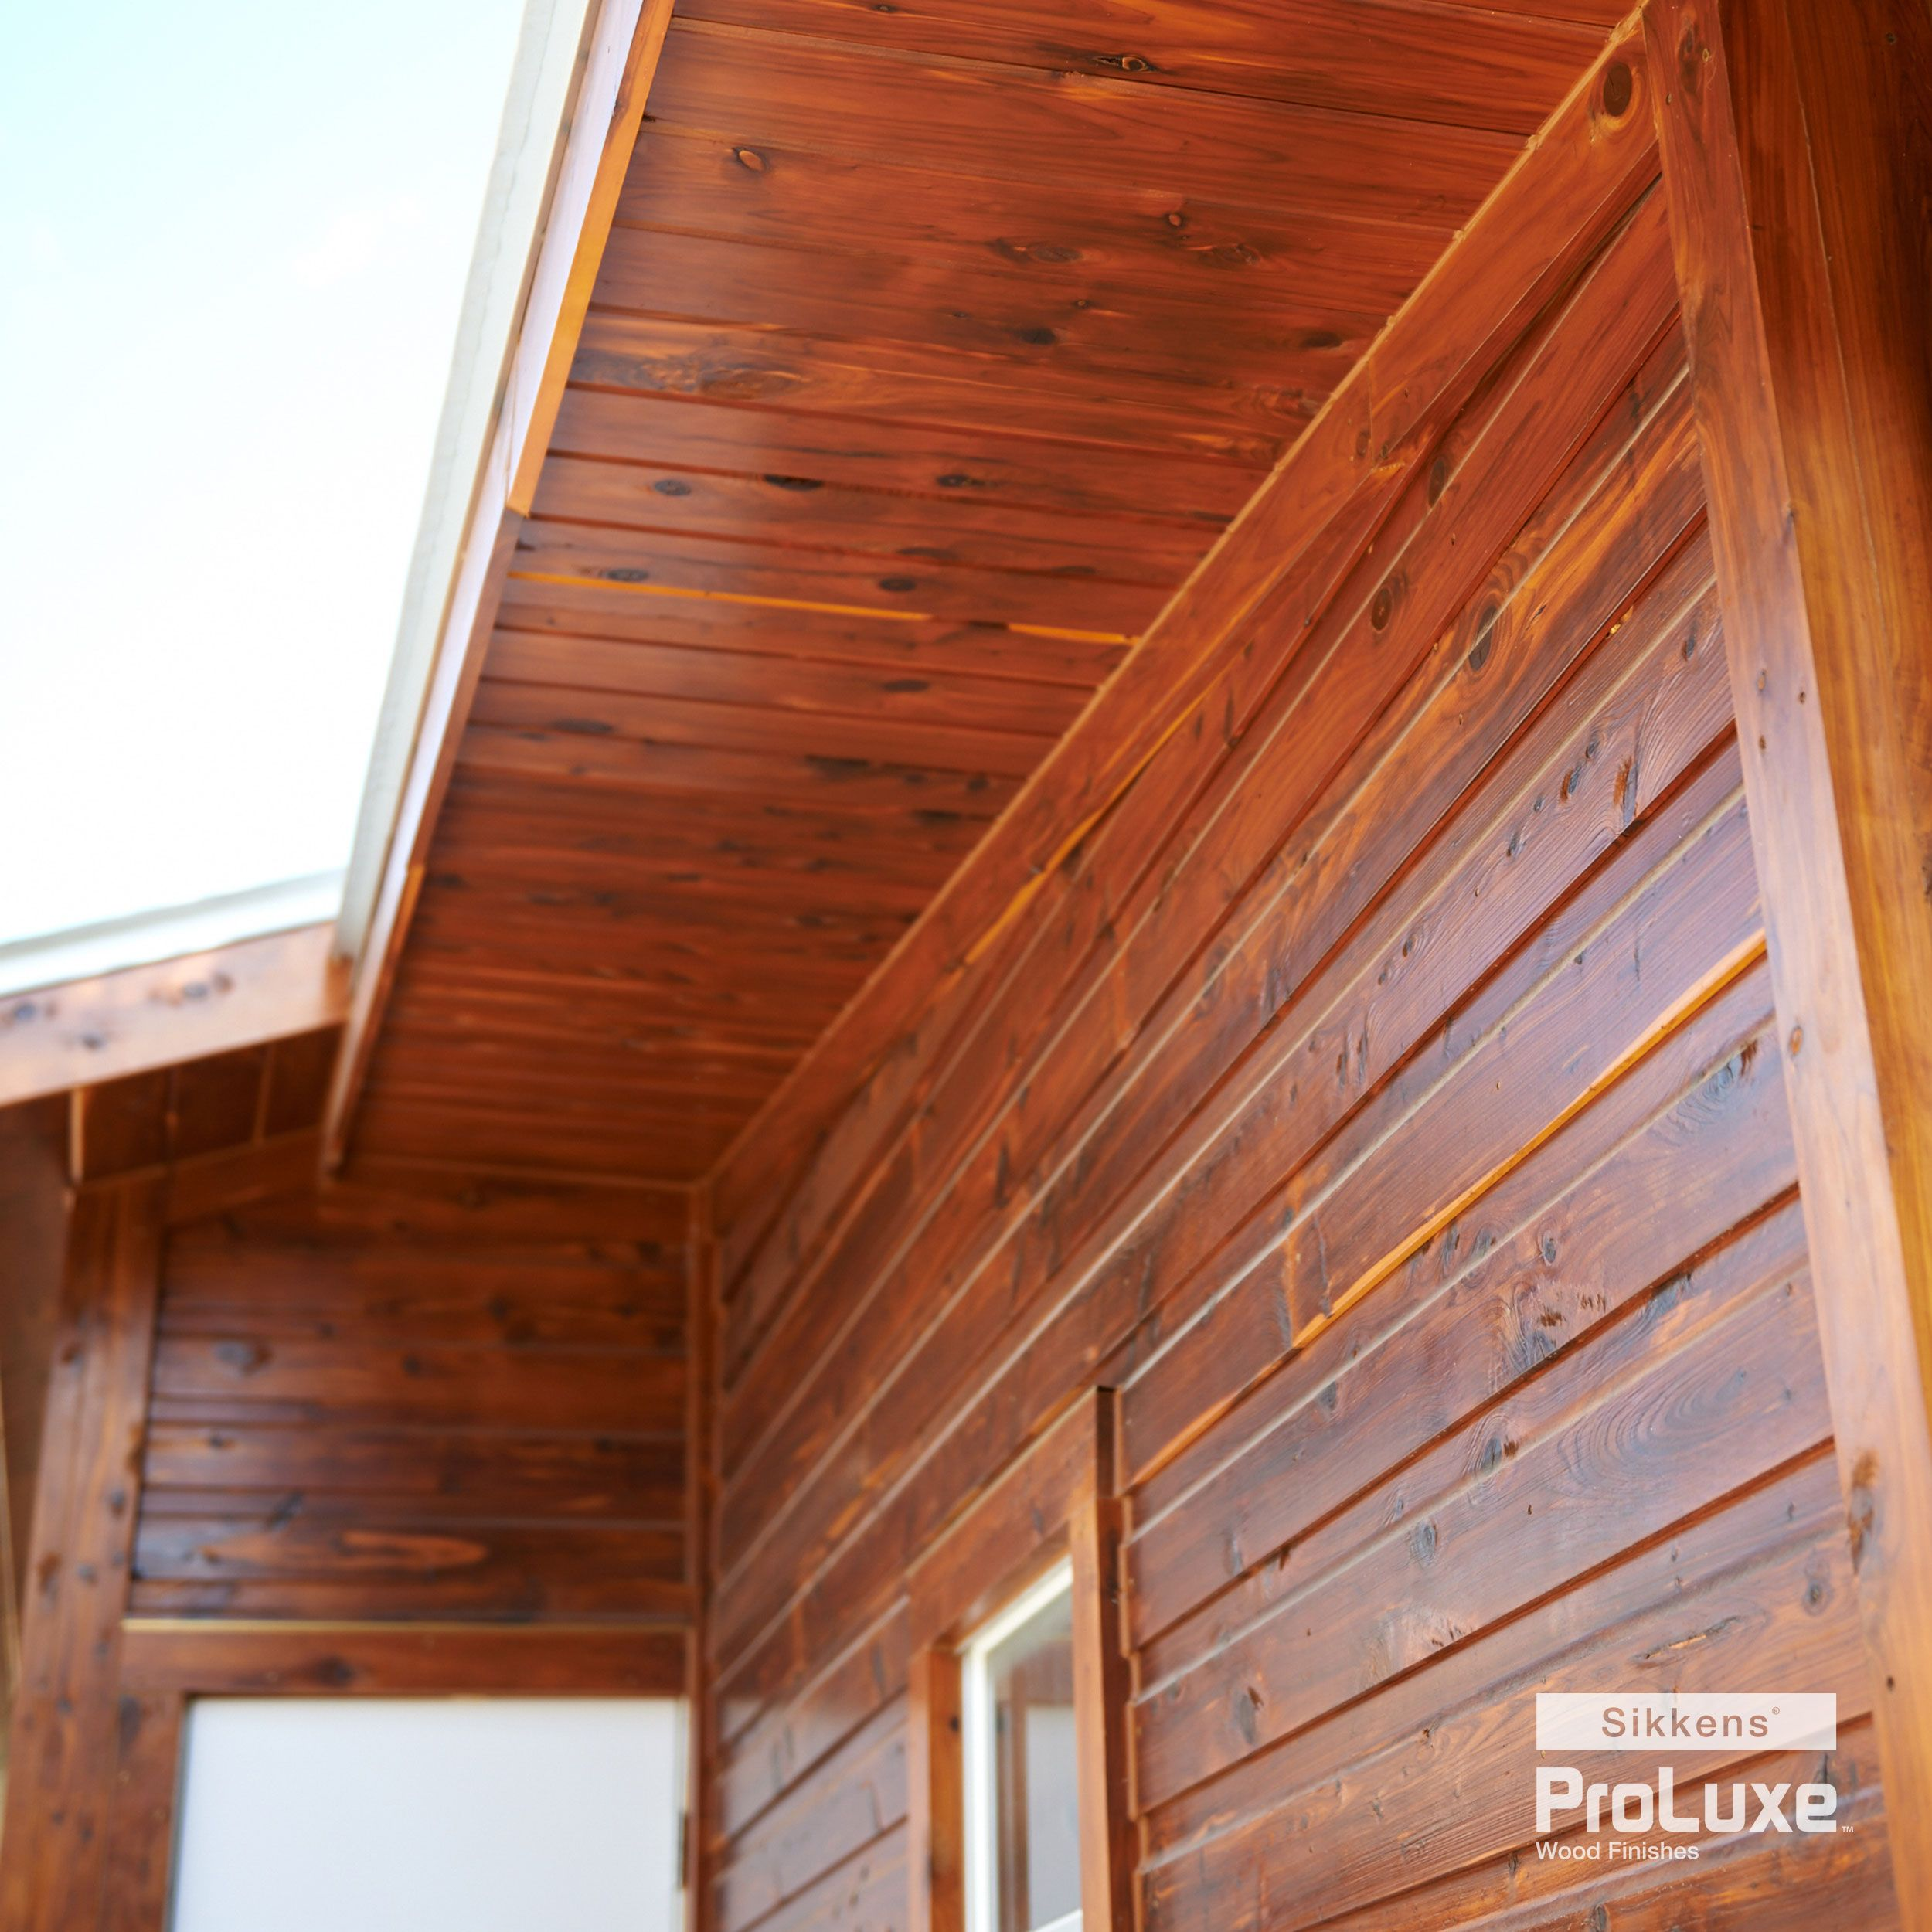 Featuring Sikkens Proluxe Cetol Srd In Redwood Log